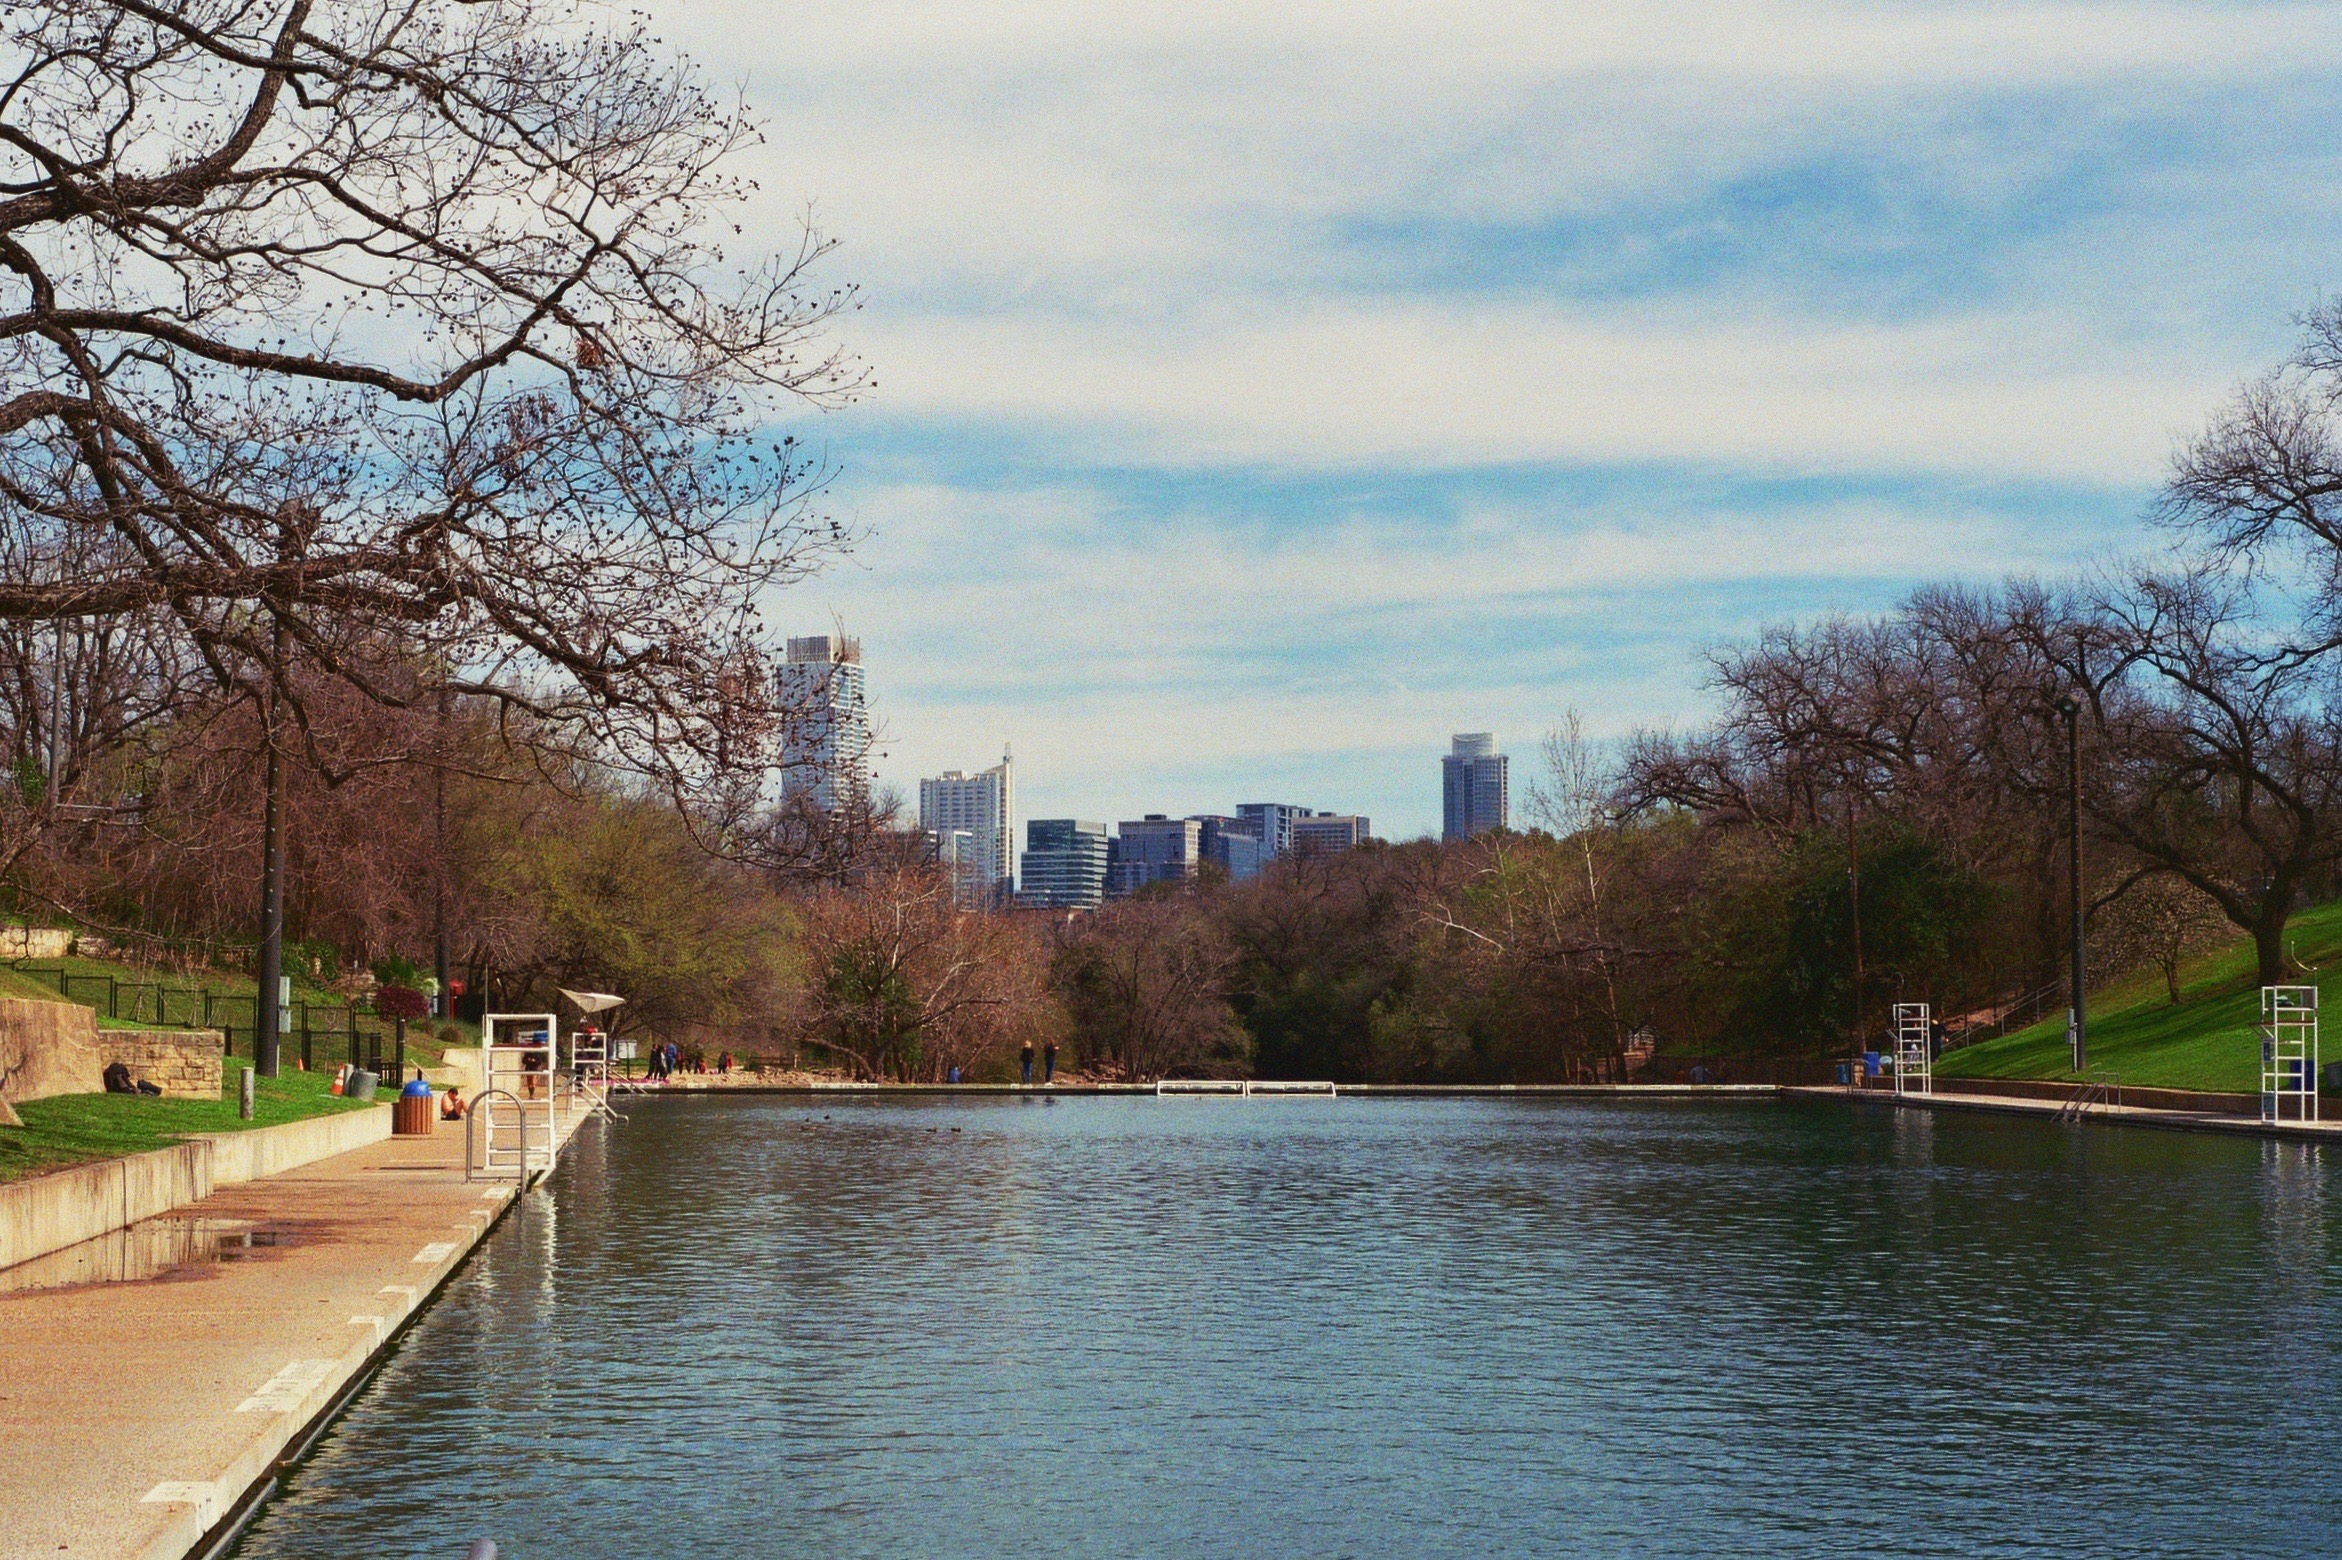 Barton Springs Pool , with the rapidly-growing city skyline off in the distance. Austin, TX